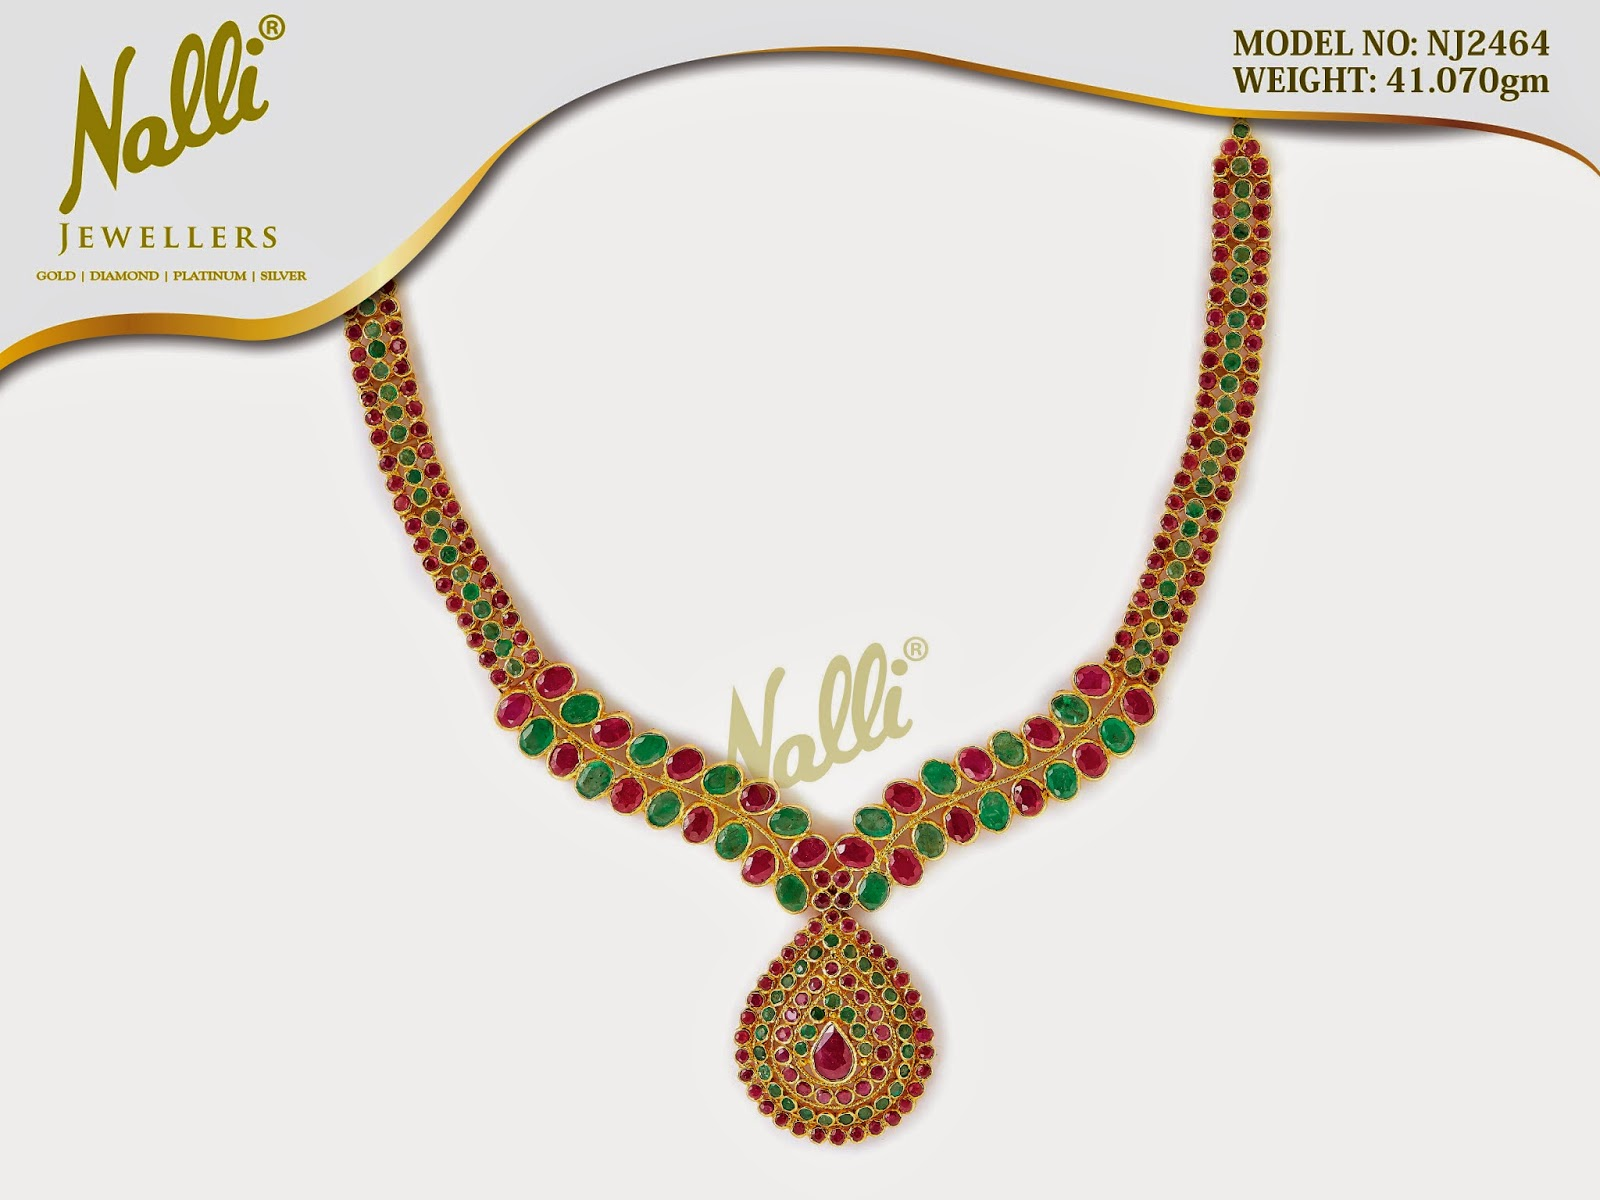 Nalli Jewellers Necklace Collections